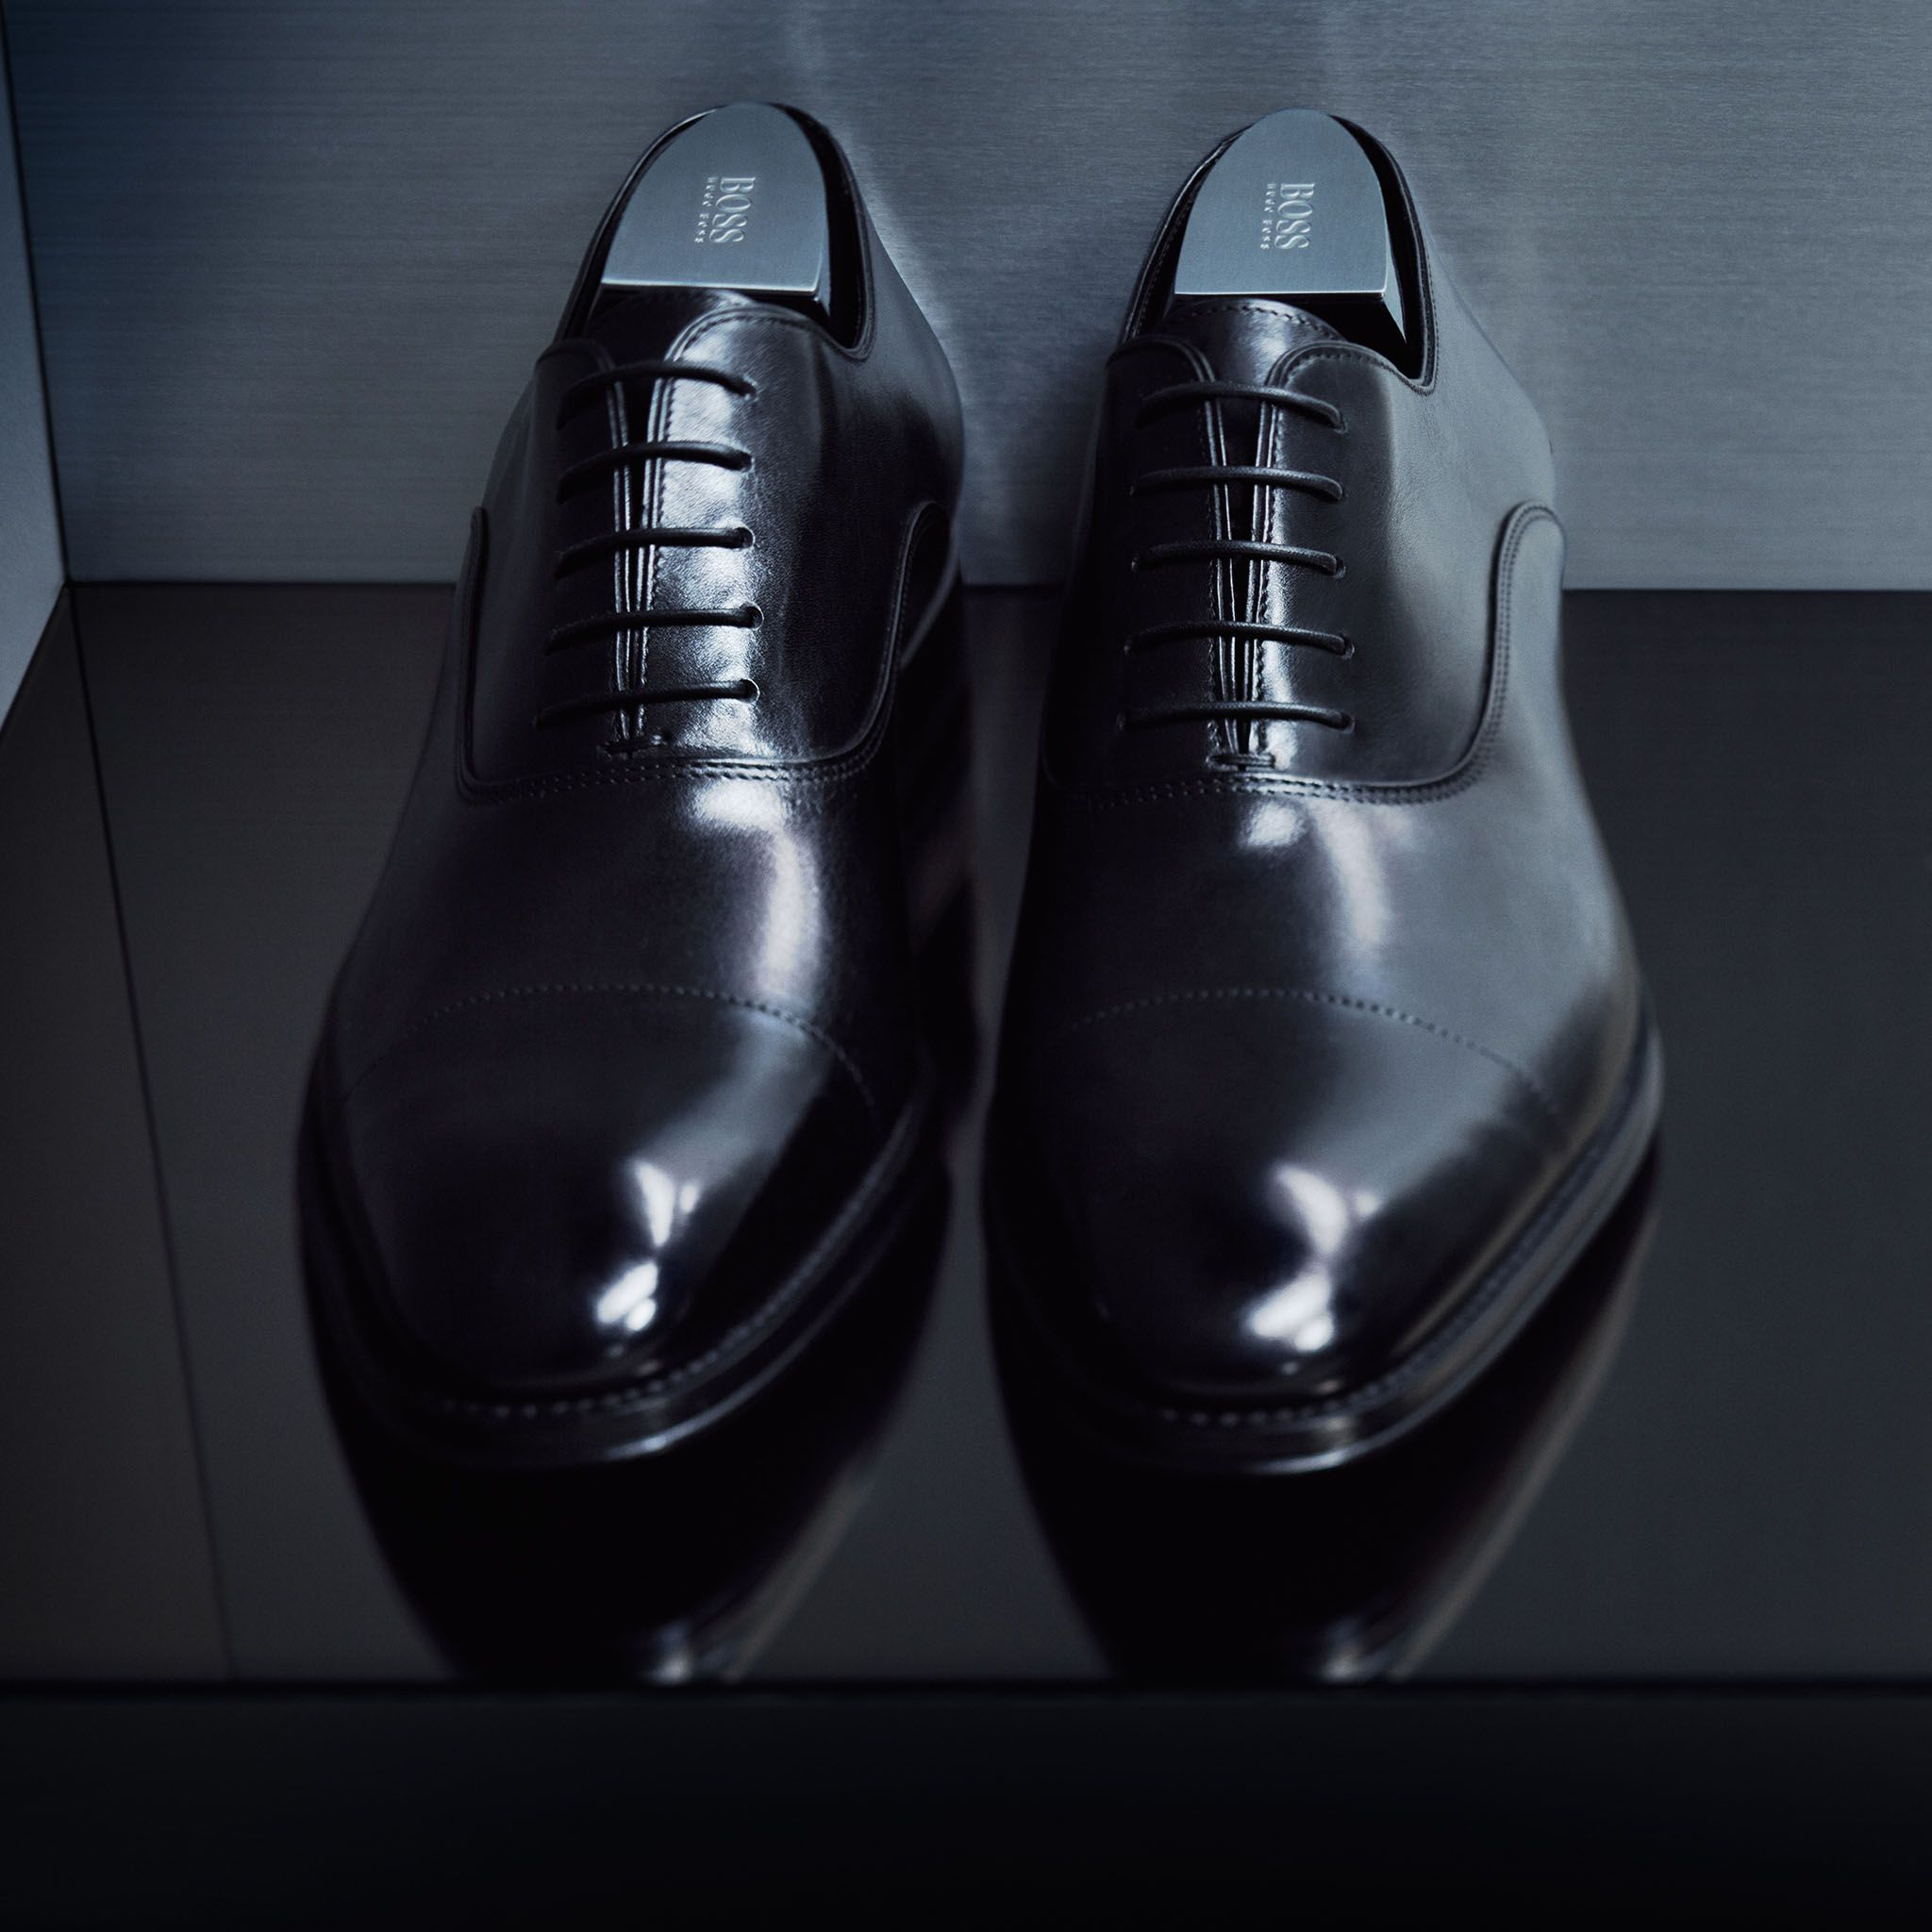 Perfect Polished Leather Oxfords From The Boss Made To Measure Selection Thisisboss Hugo Boss Mens Shoes Dress Shoes Men Leather Brogues